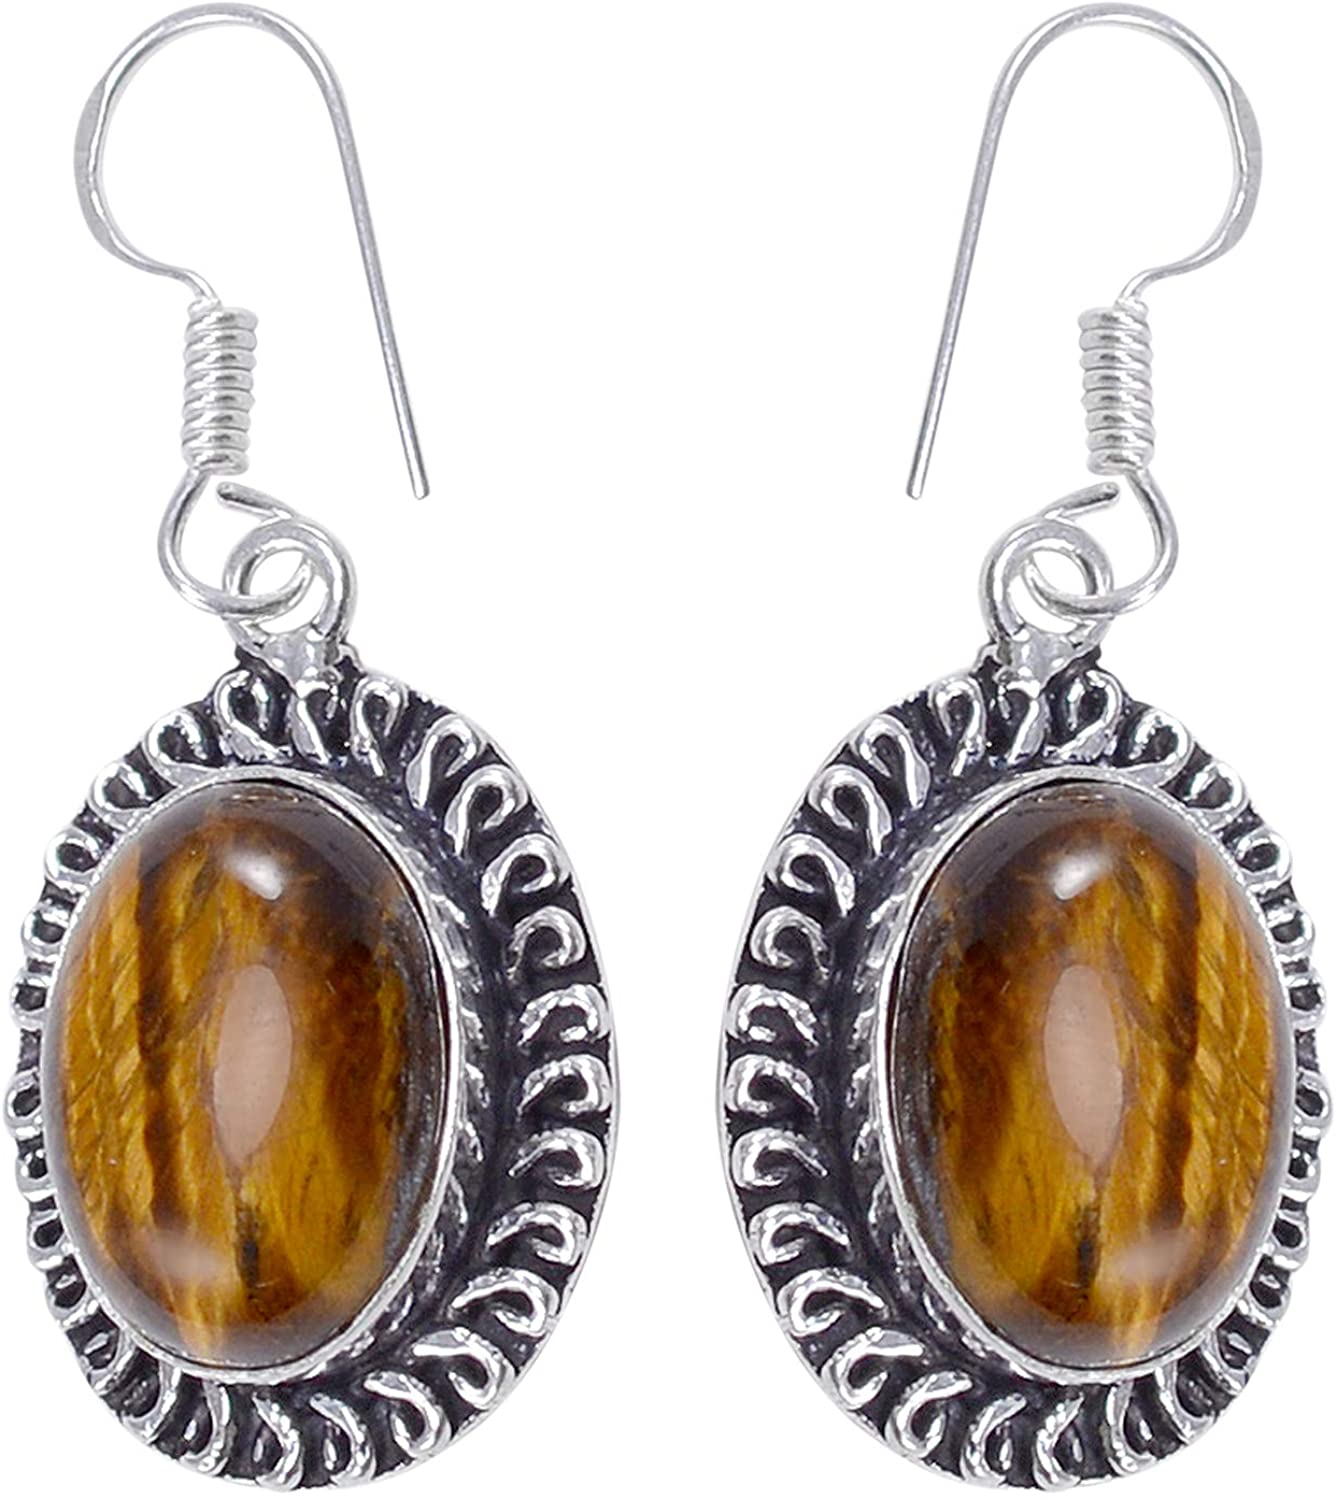 Silvesto India 925 Sterling Silver Plated- Brown Tiger Eye- Handmade Jewelry Manufacturer Simple Design Dangle Earring